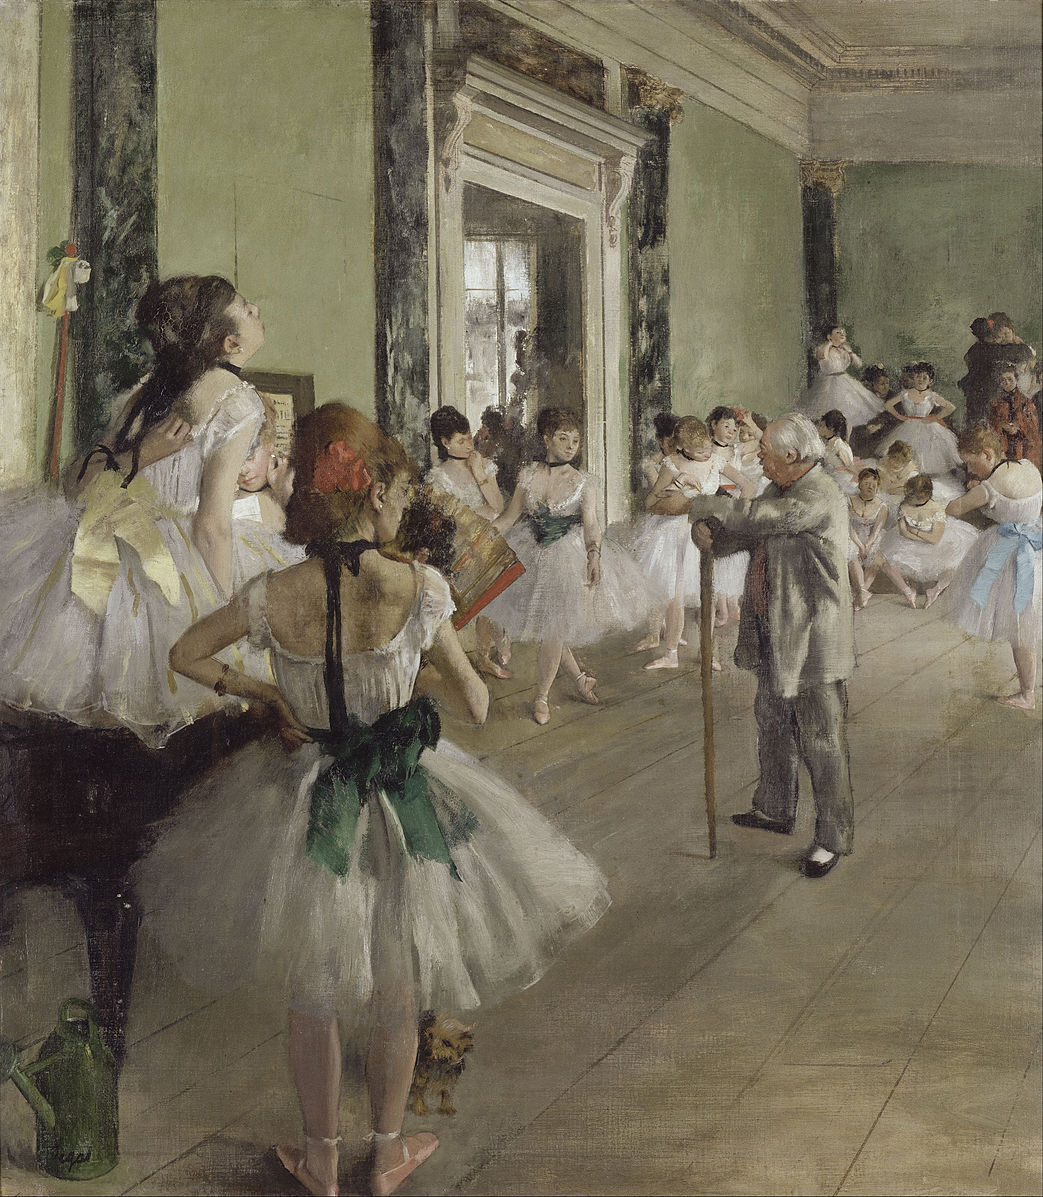 The Ballet Class by Degas